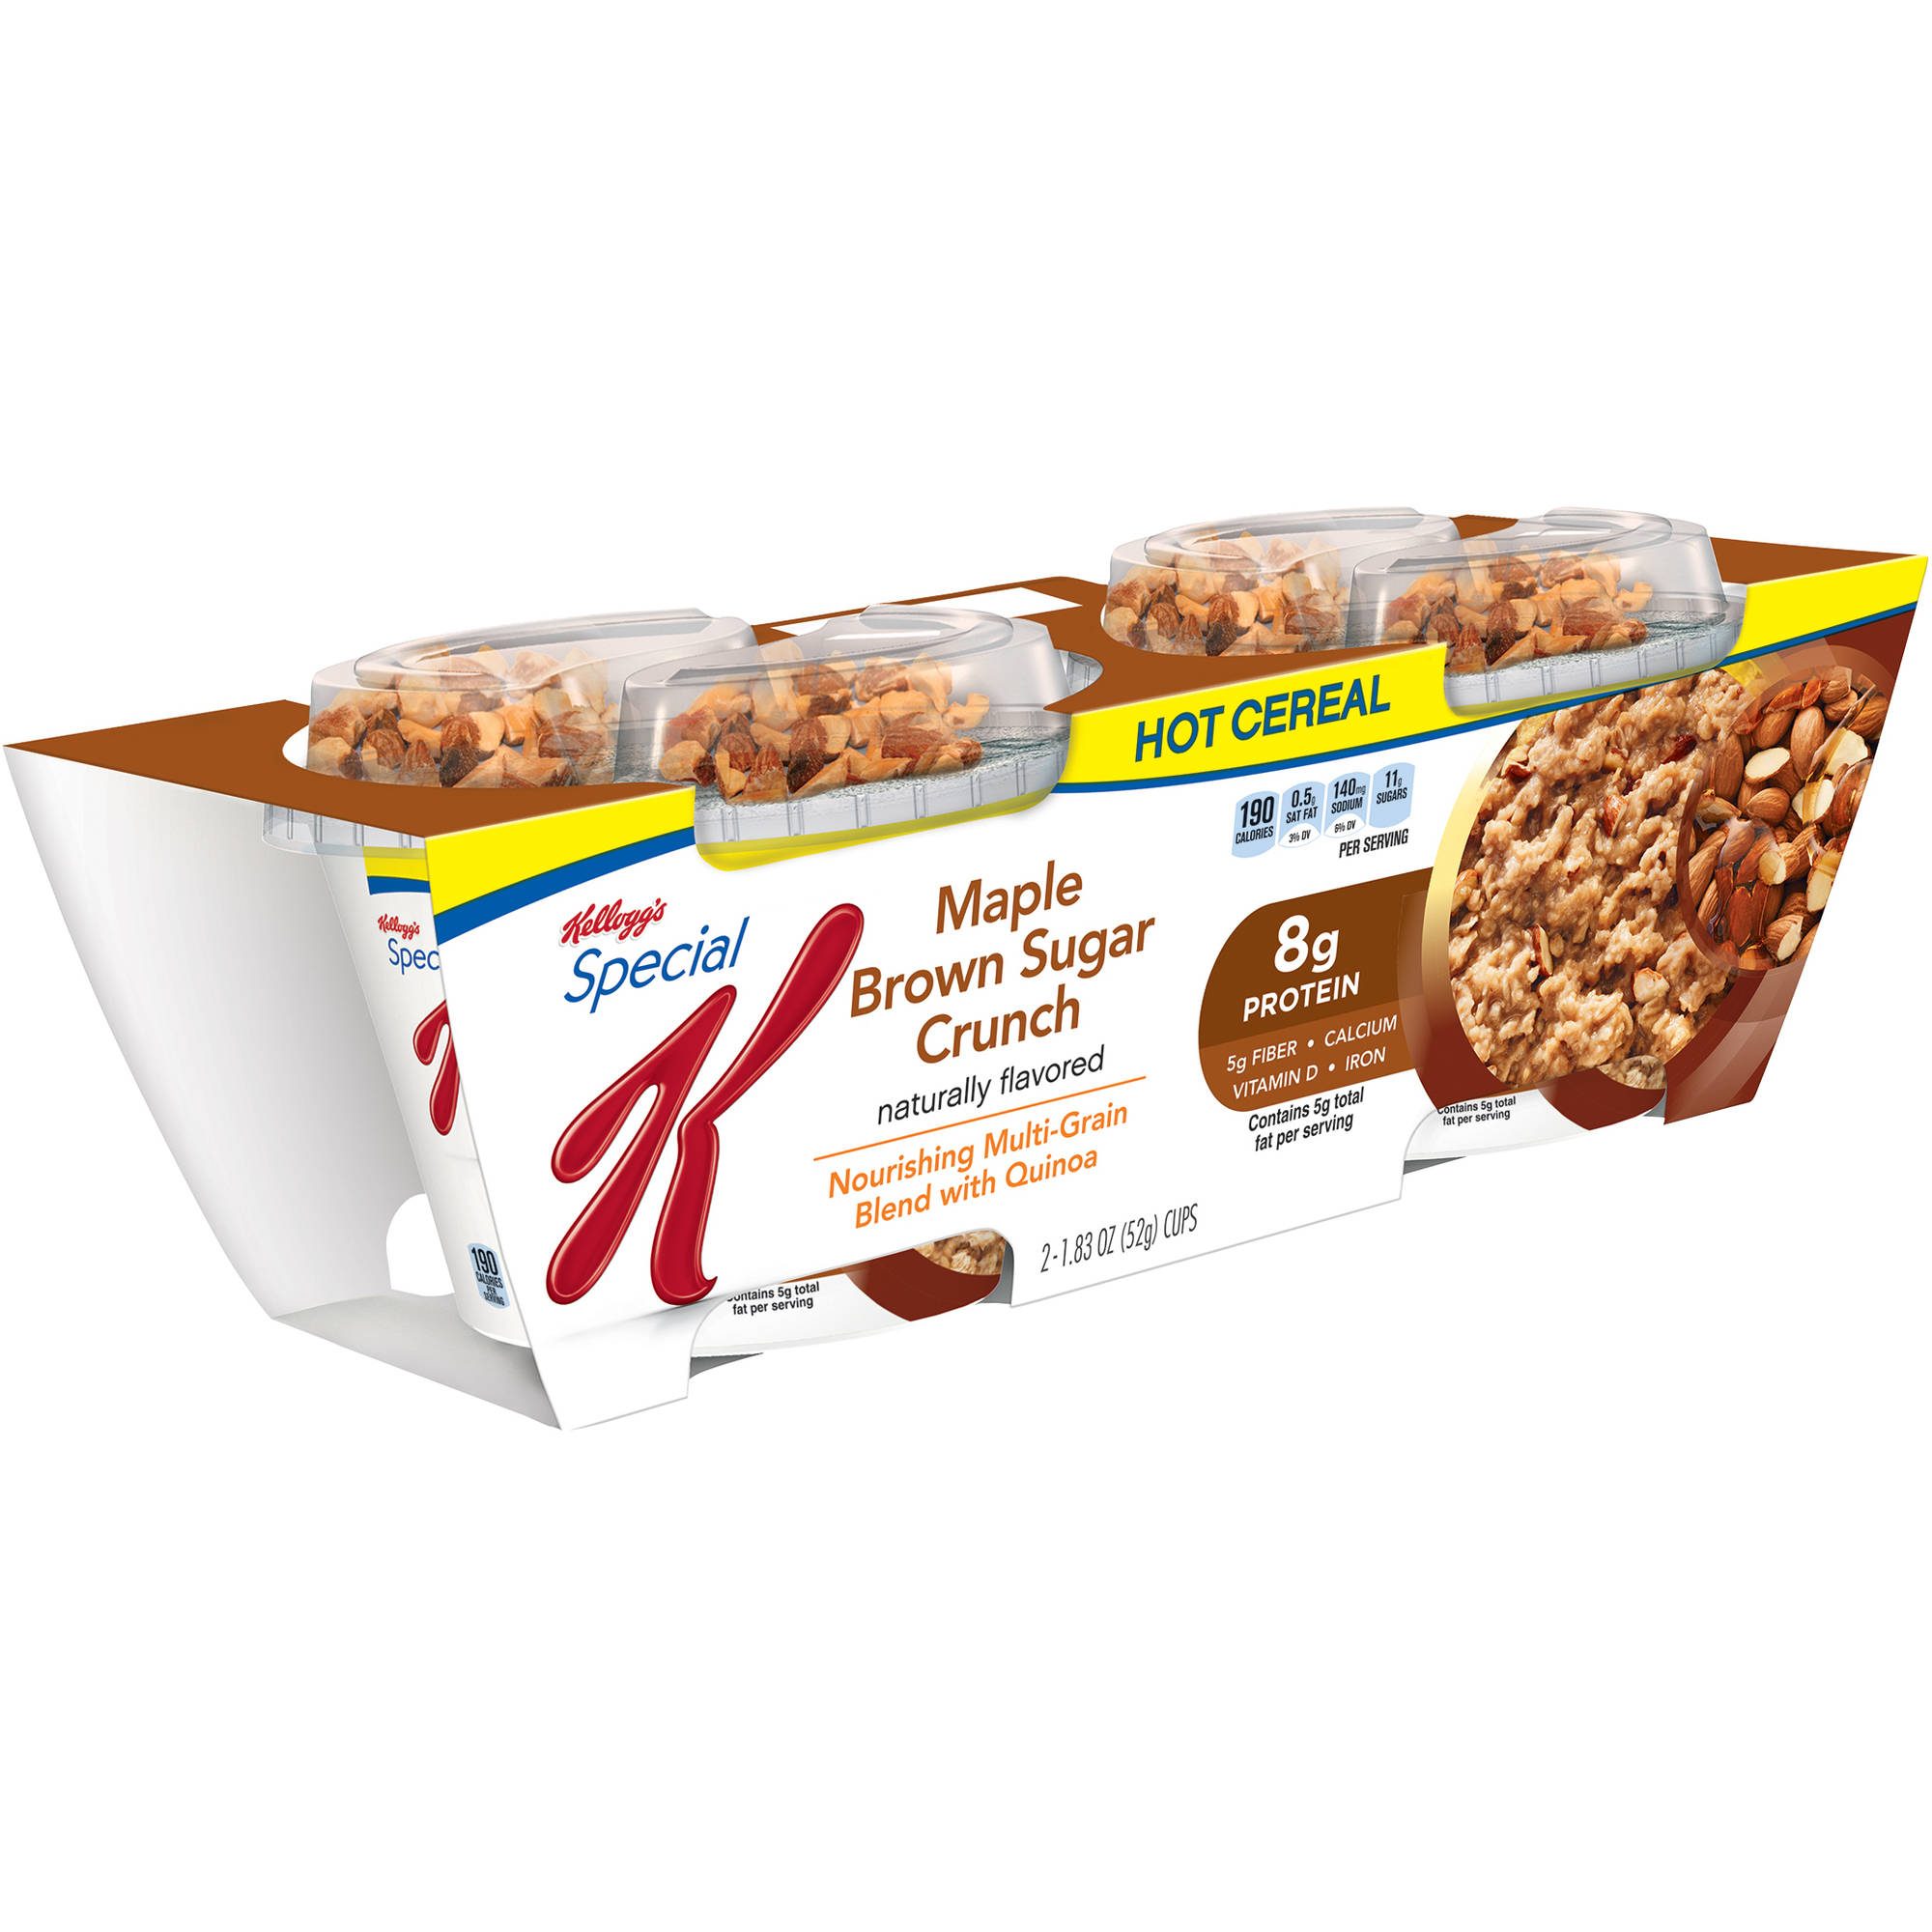 Kellogg's Special K Maple Brown Sugar Crunch Hot Cereal, 1.83 oz, 2 count